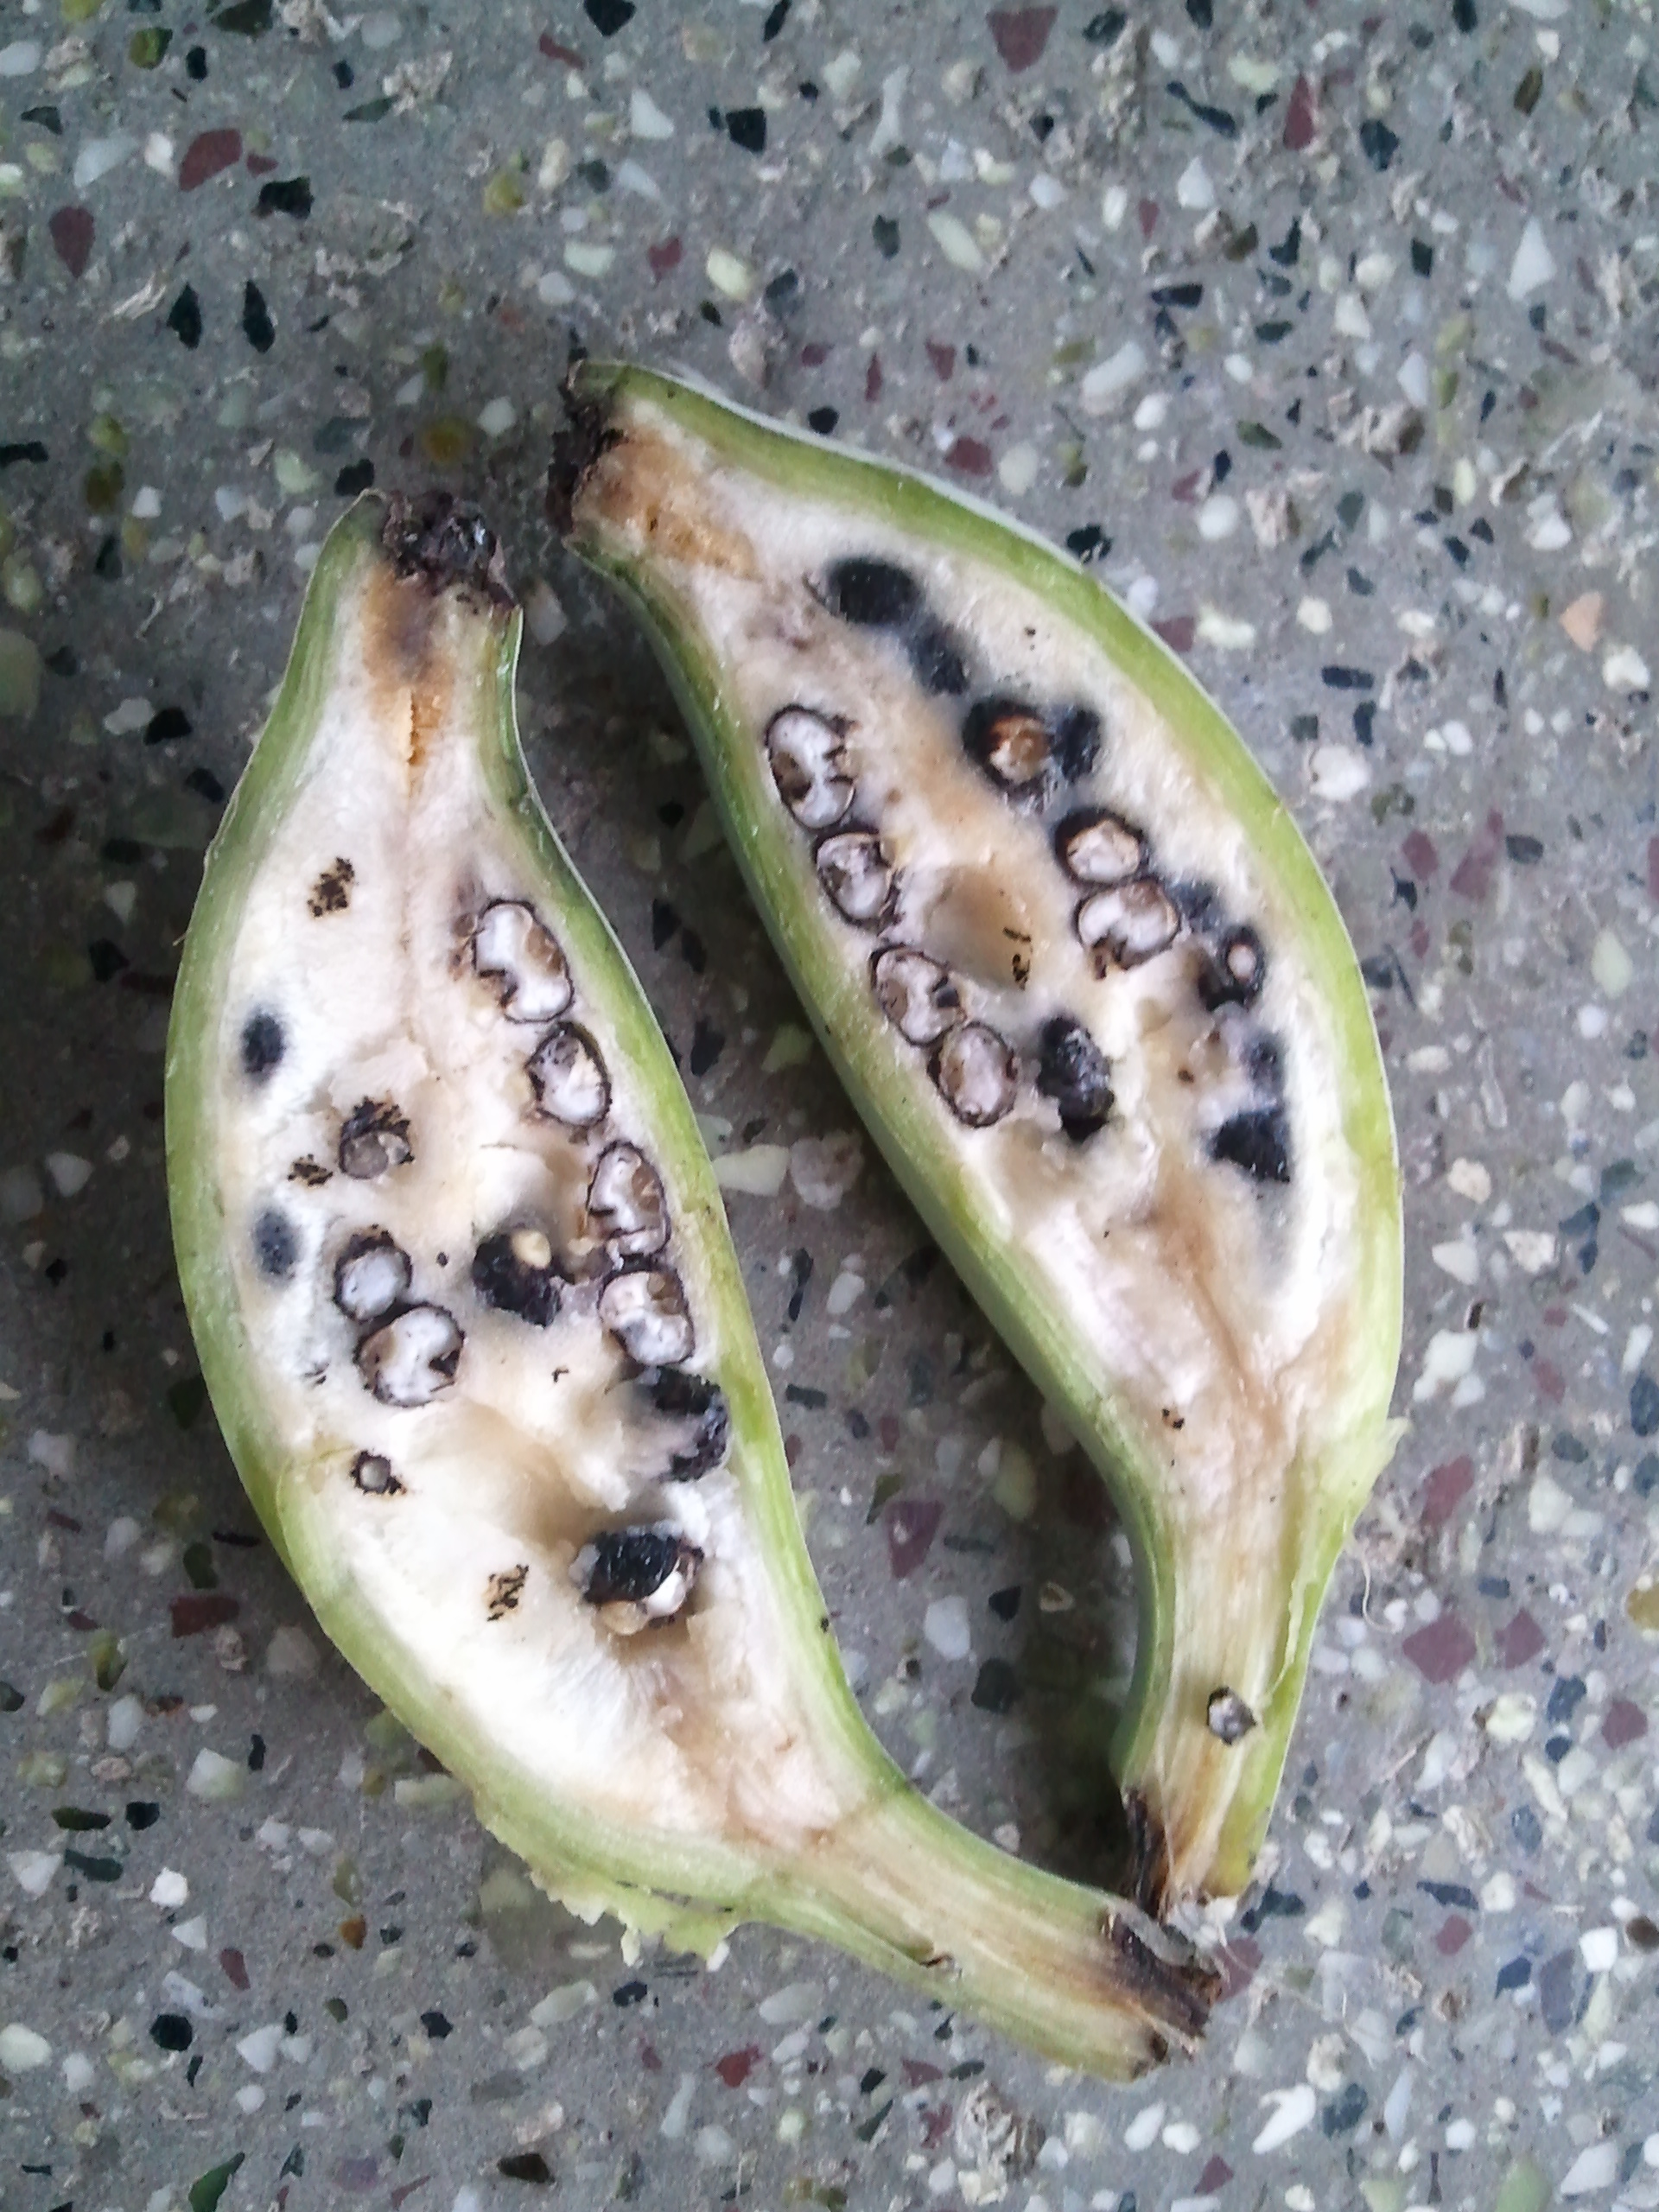 A banana with seeds